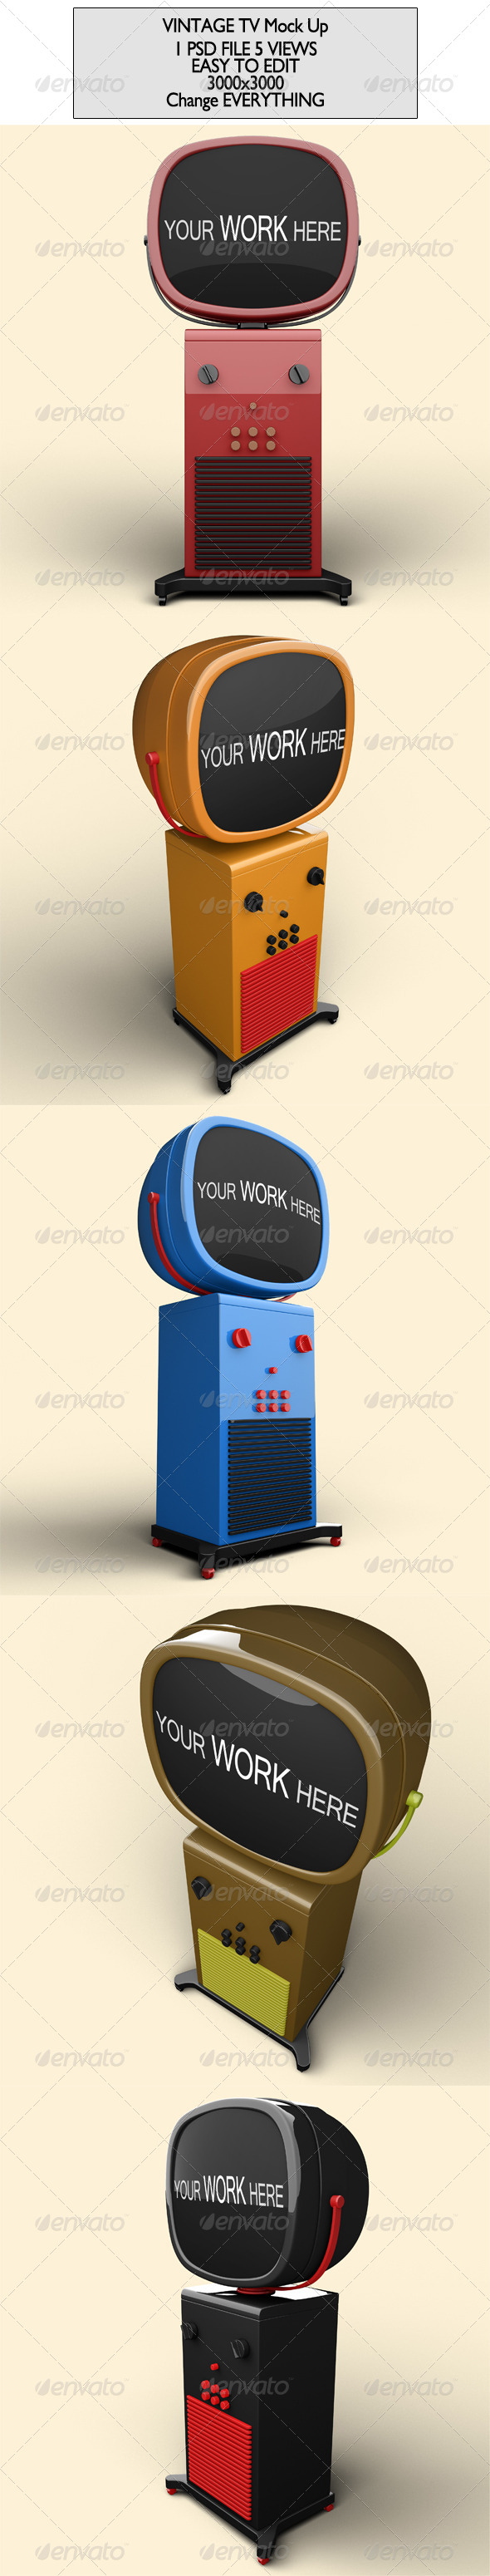 Vintage Tv Mock Up - Product Mock-Ups Graphics